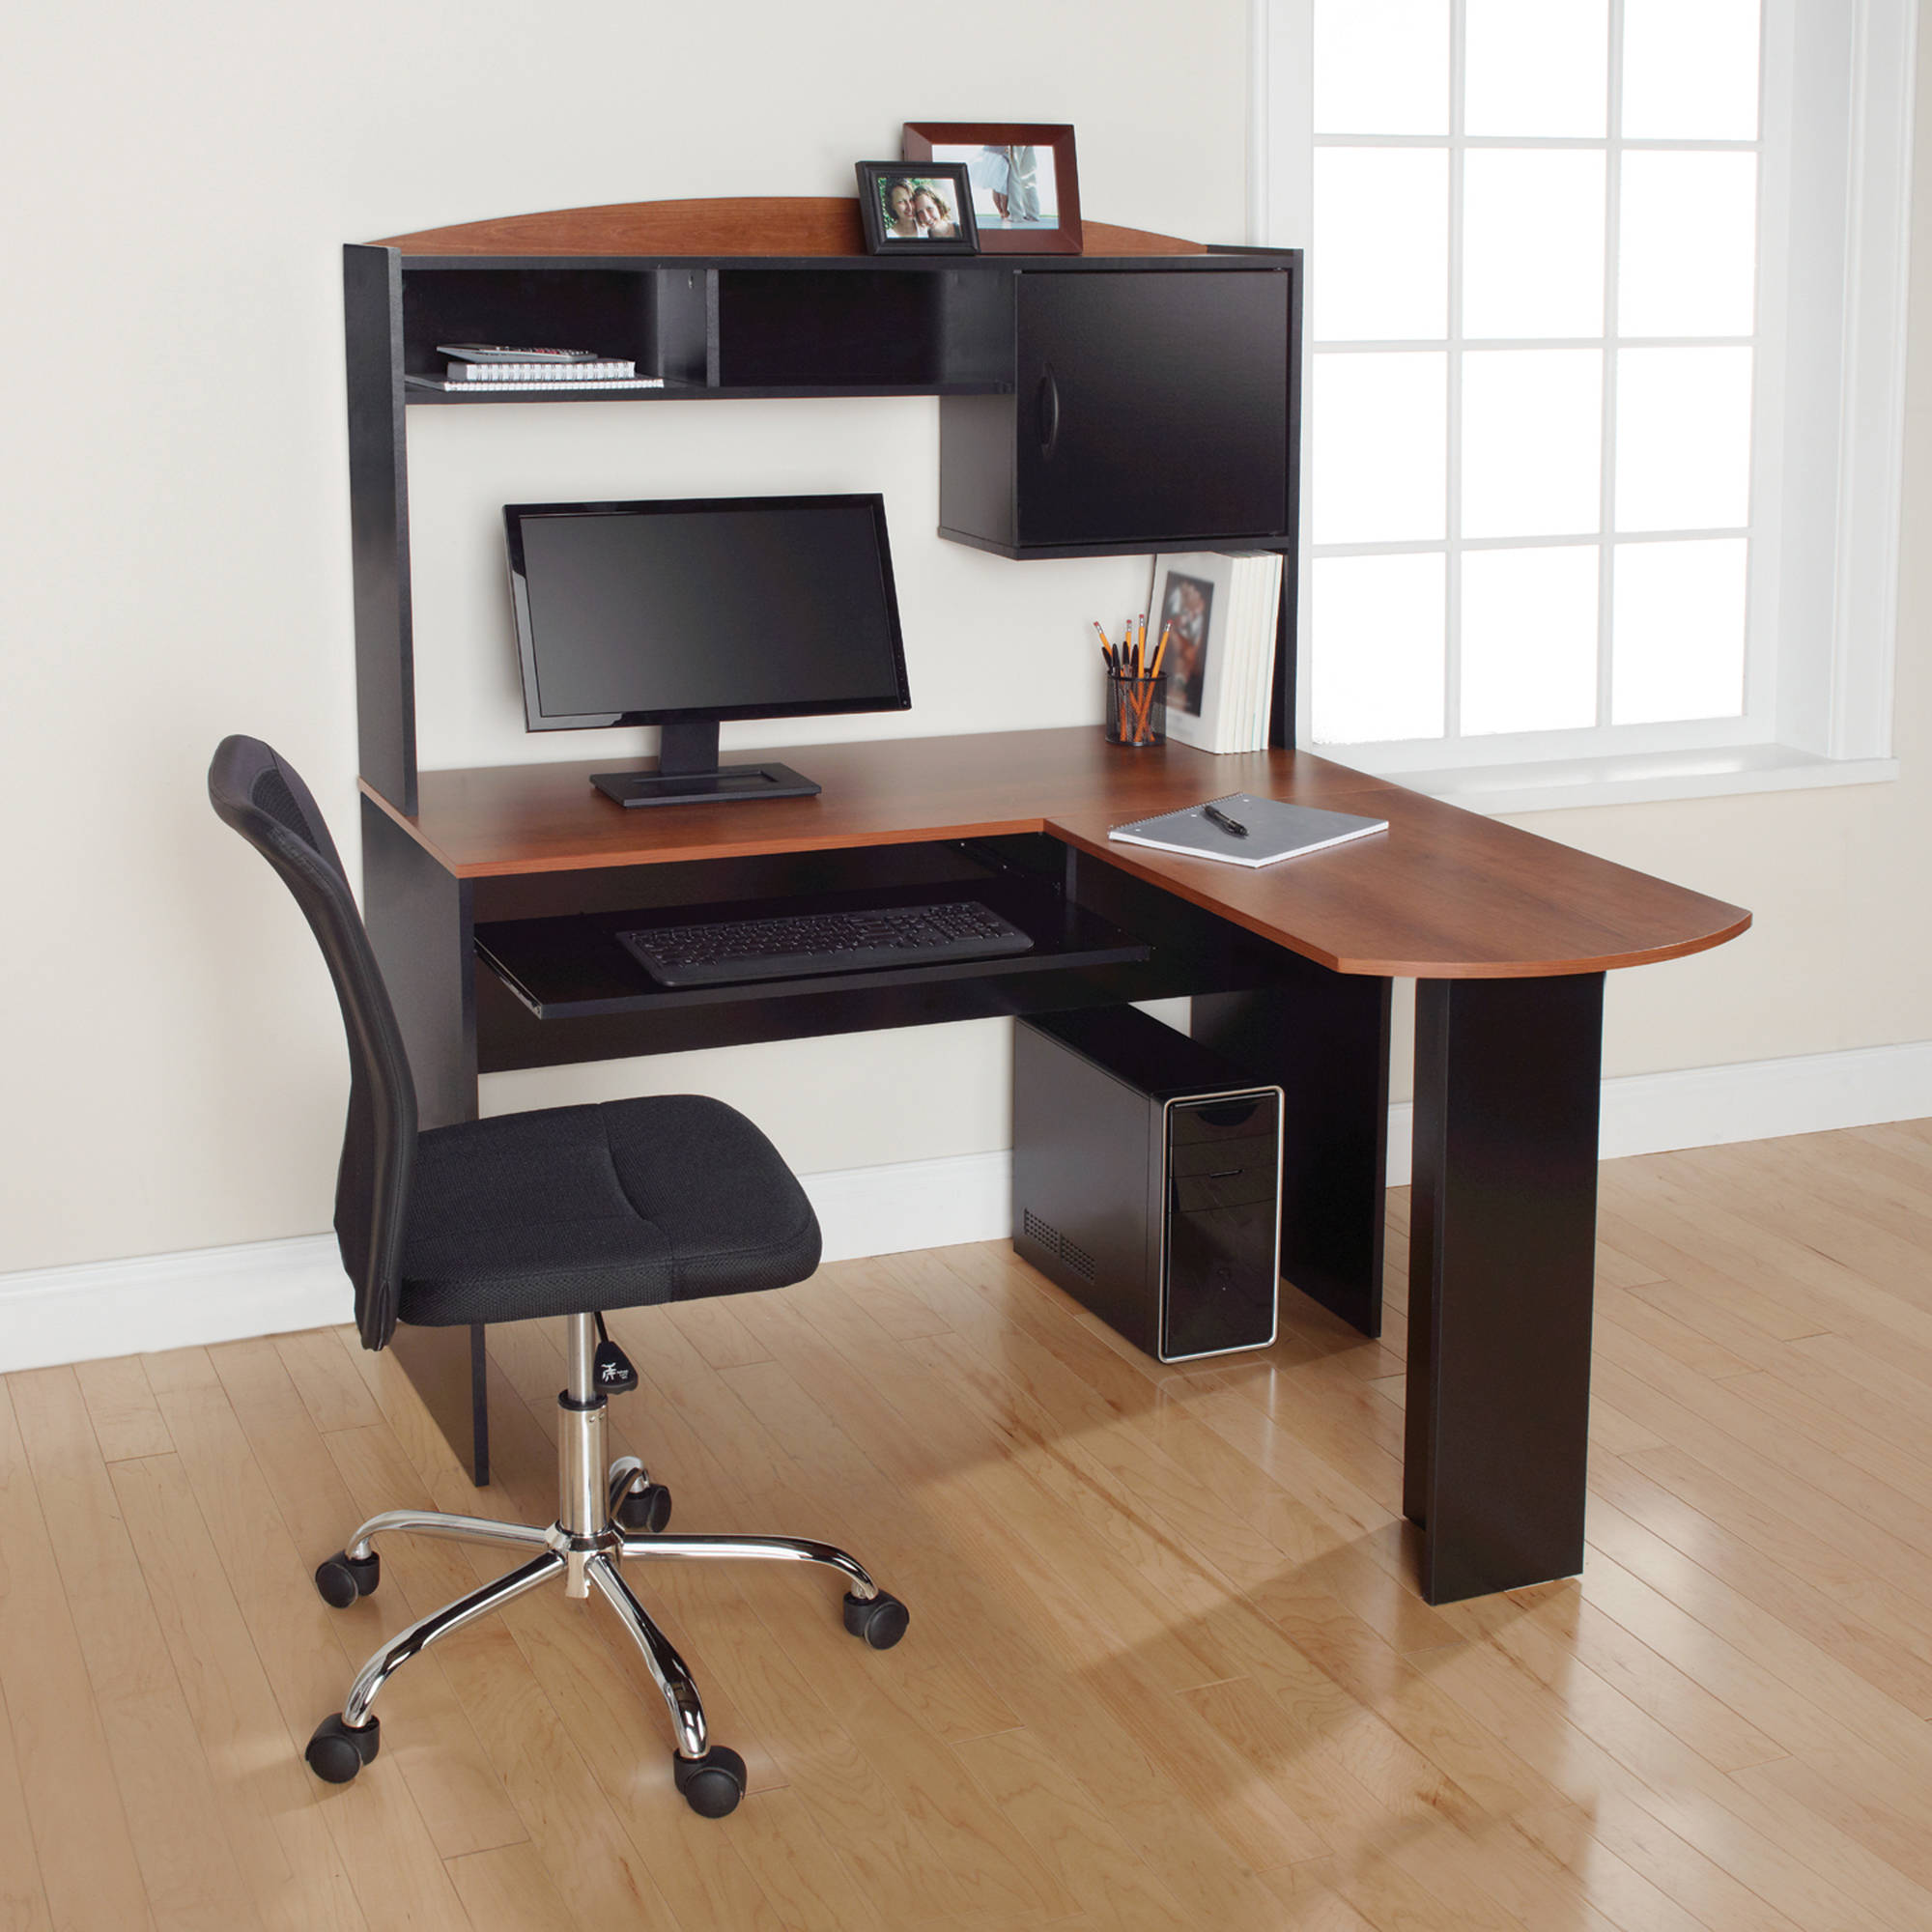 office desk walmart. office desk walmart best choice products wood lshape corner computer pc laptop a